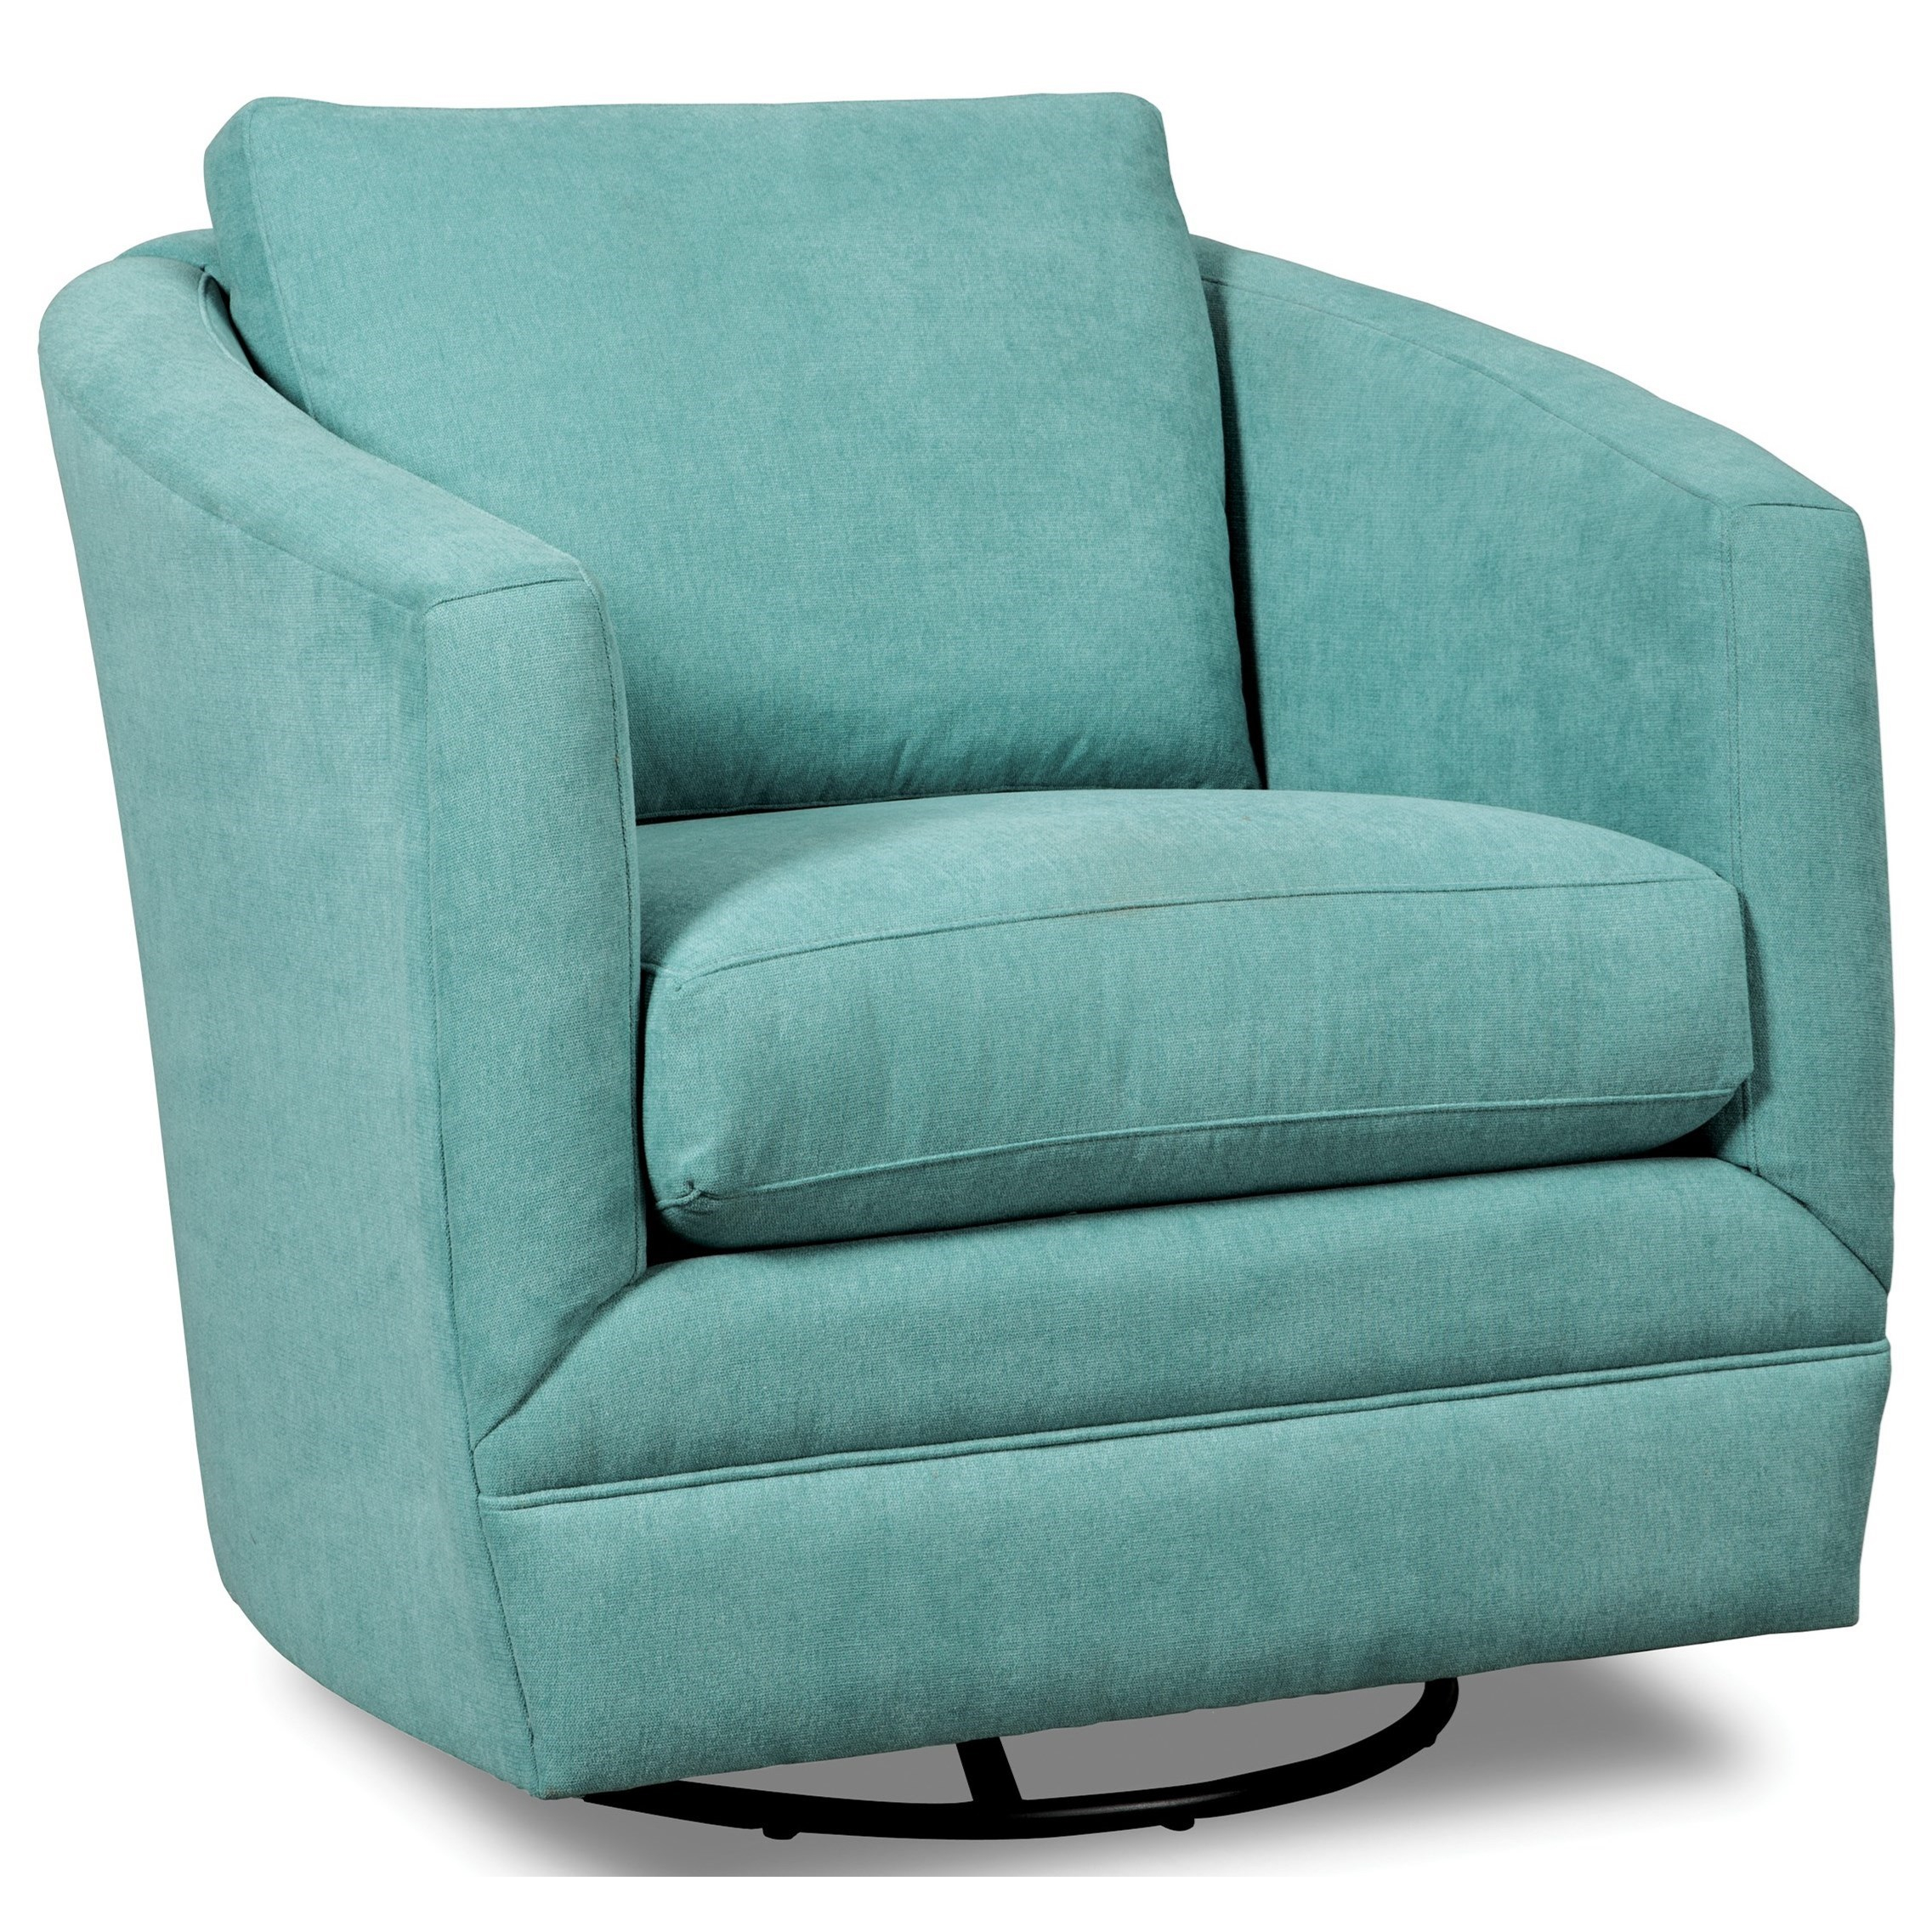 Accent Chairs Swivel Barrel Chair | Stoney Creek Furniture Pertaining To Umber Grey Swivel Accent Chairs (Image 1 of 20)